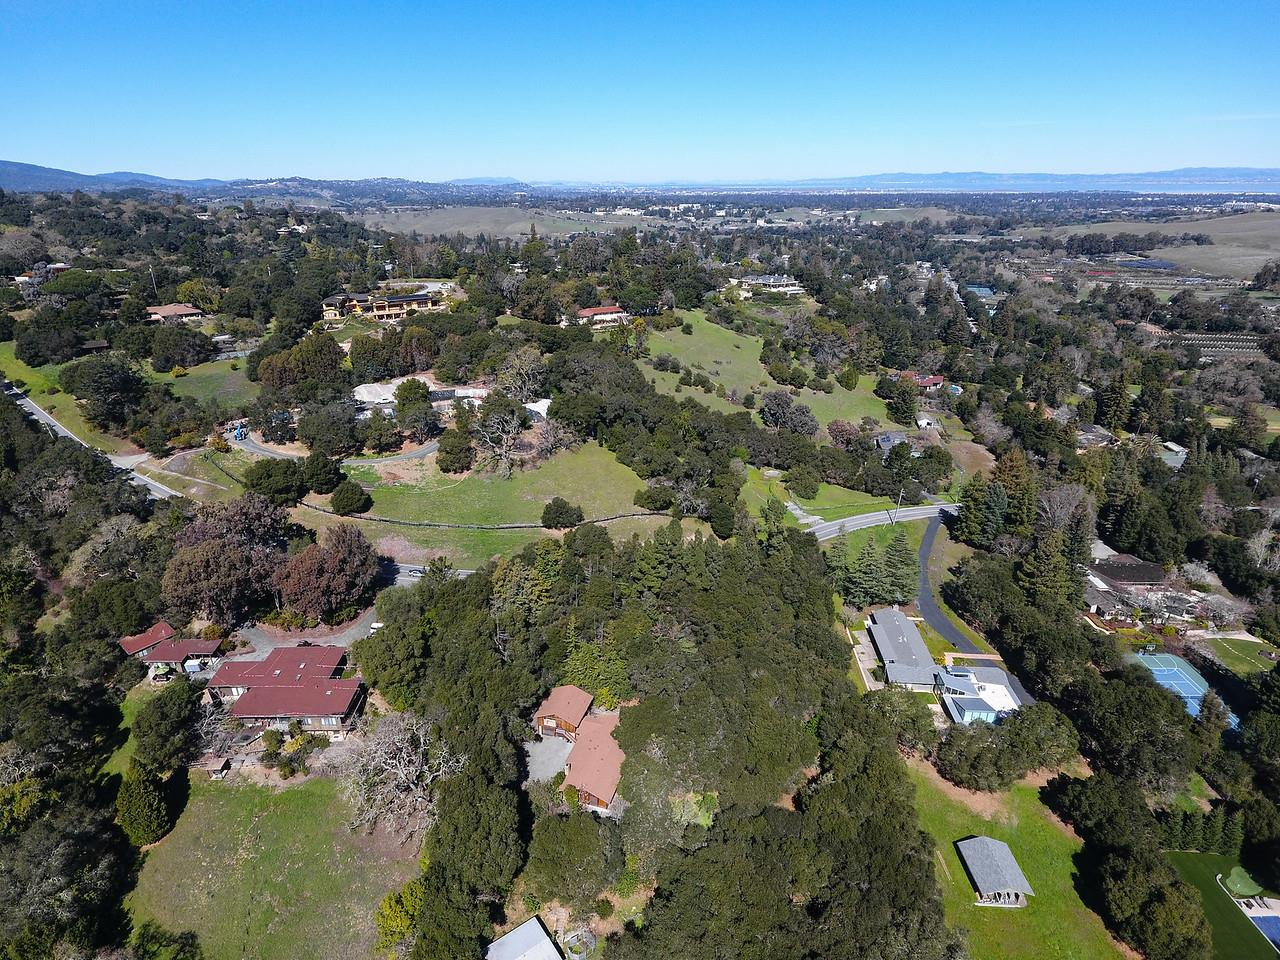 Single Family Home for Sale at 187 Westridge Drive 187 Westridge Drive Portola Valley, California 94028 United States